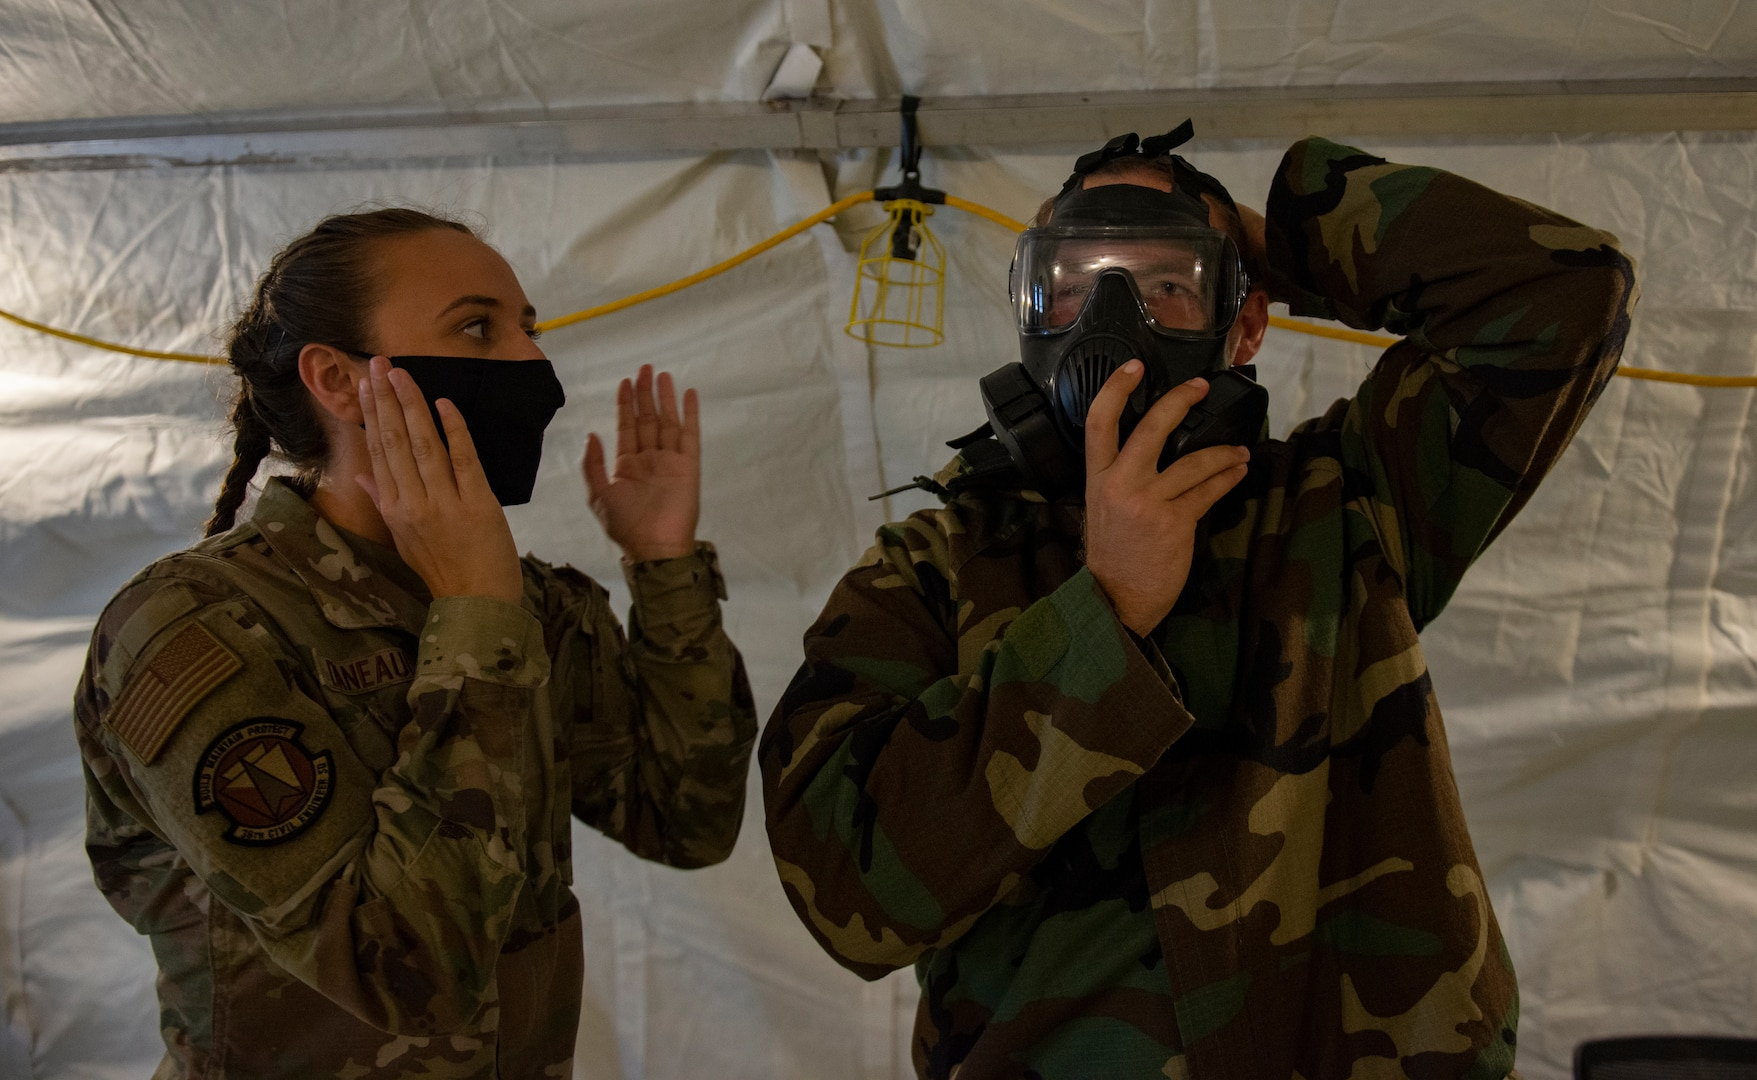 Emergency management feels the CBRNE during training